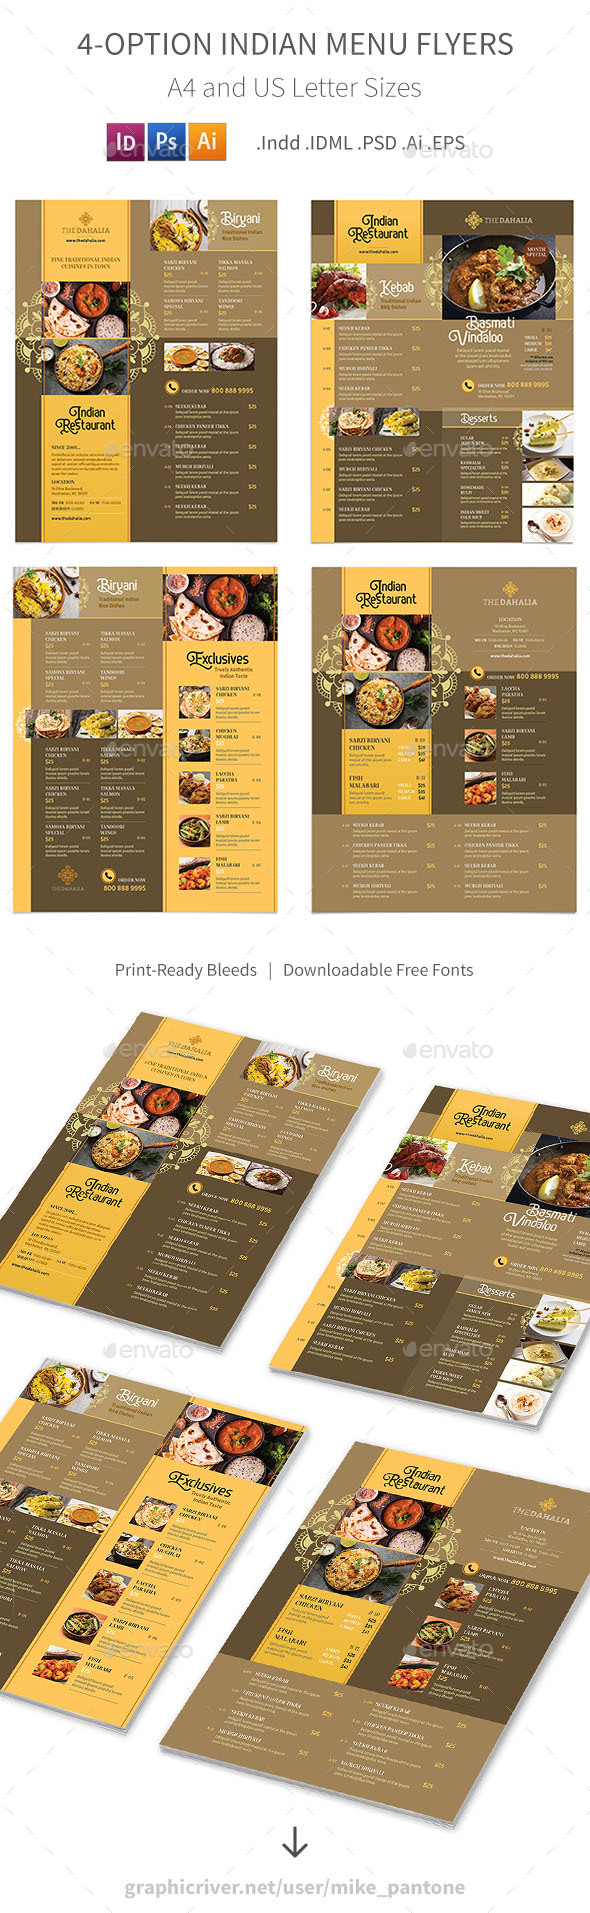 Indian Restaurant Menu Flyers 2 – 4 Options - Food Menus Print Templates